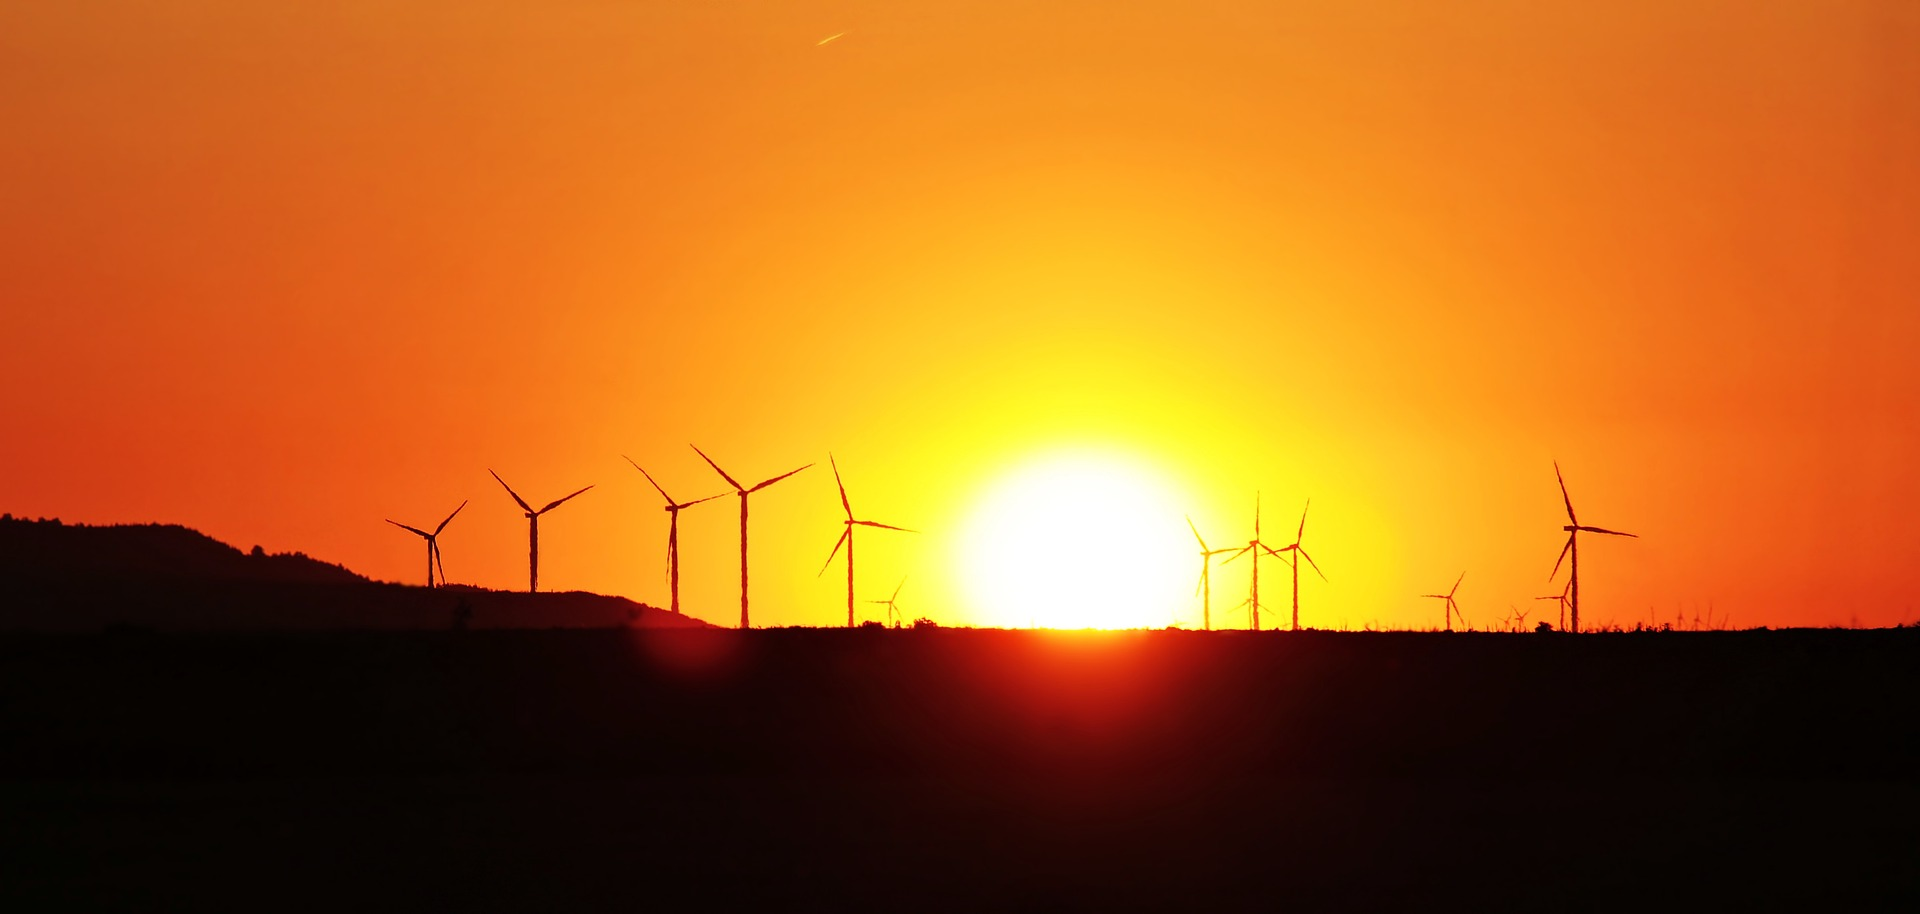 sunset with windmills in foreground